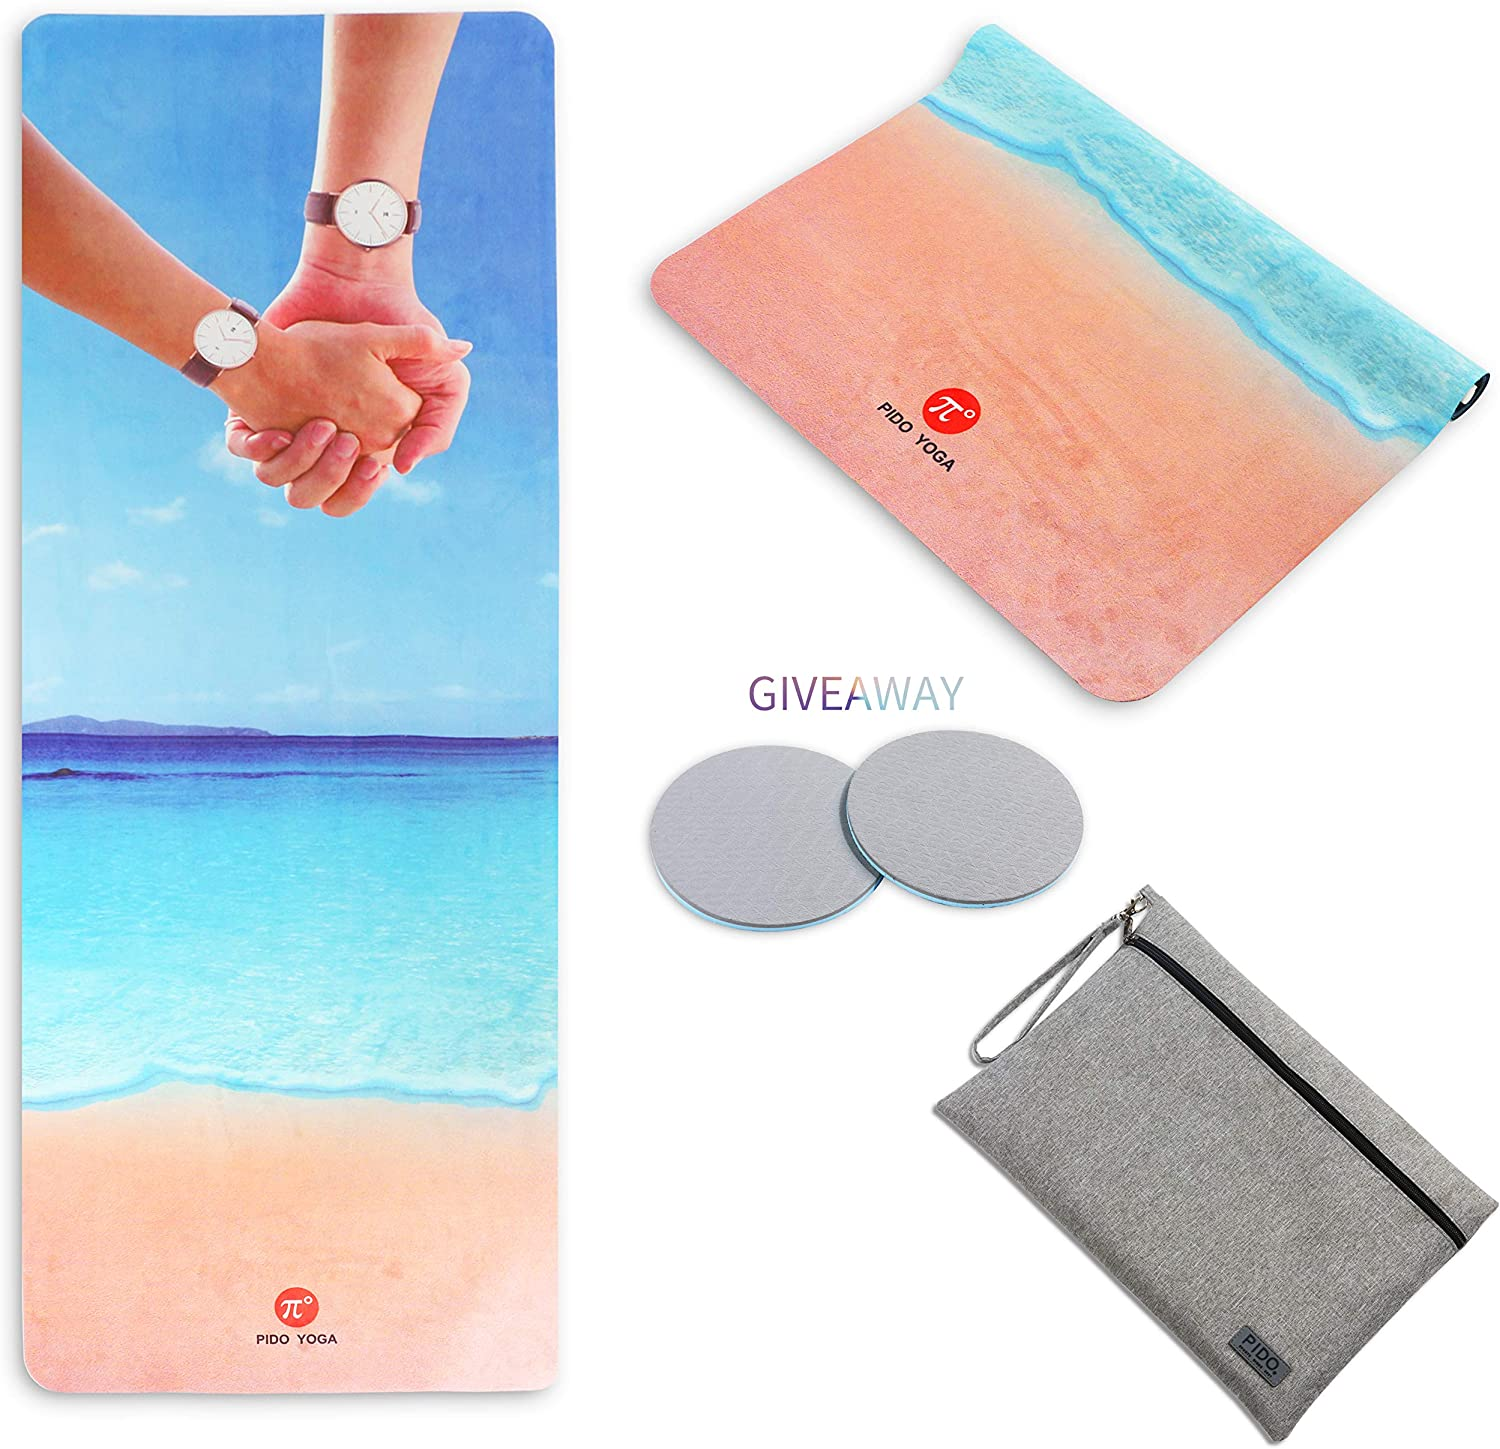 """WWWW Travel Yoga Mat Non Slip Printed Suede Rubber Yoga Mat with Bag 72""""x 26"""" Portable 1/16 Inch Ultra Thin Folding Mat for Yoga Pilates Home Fitness Exercise"""